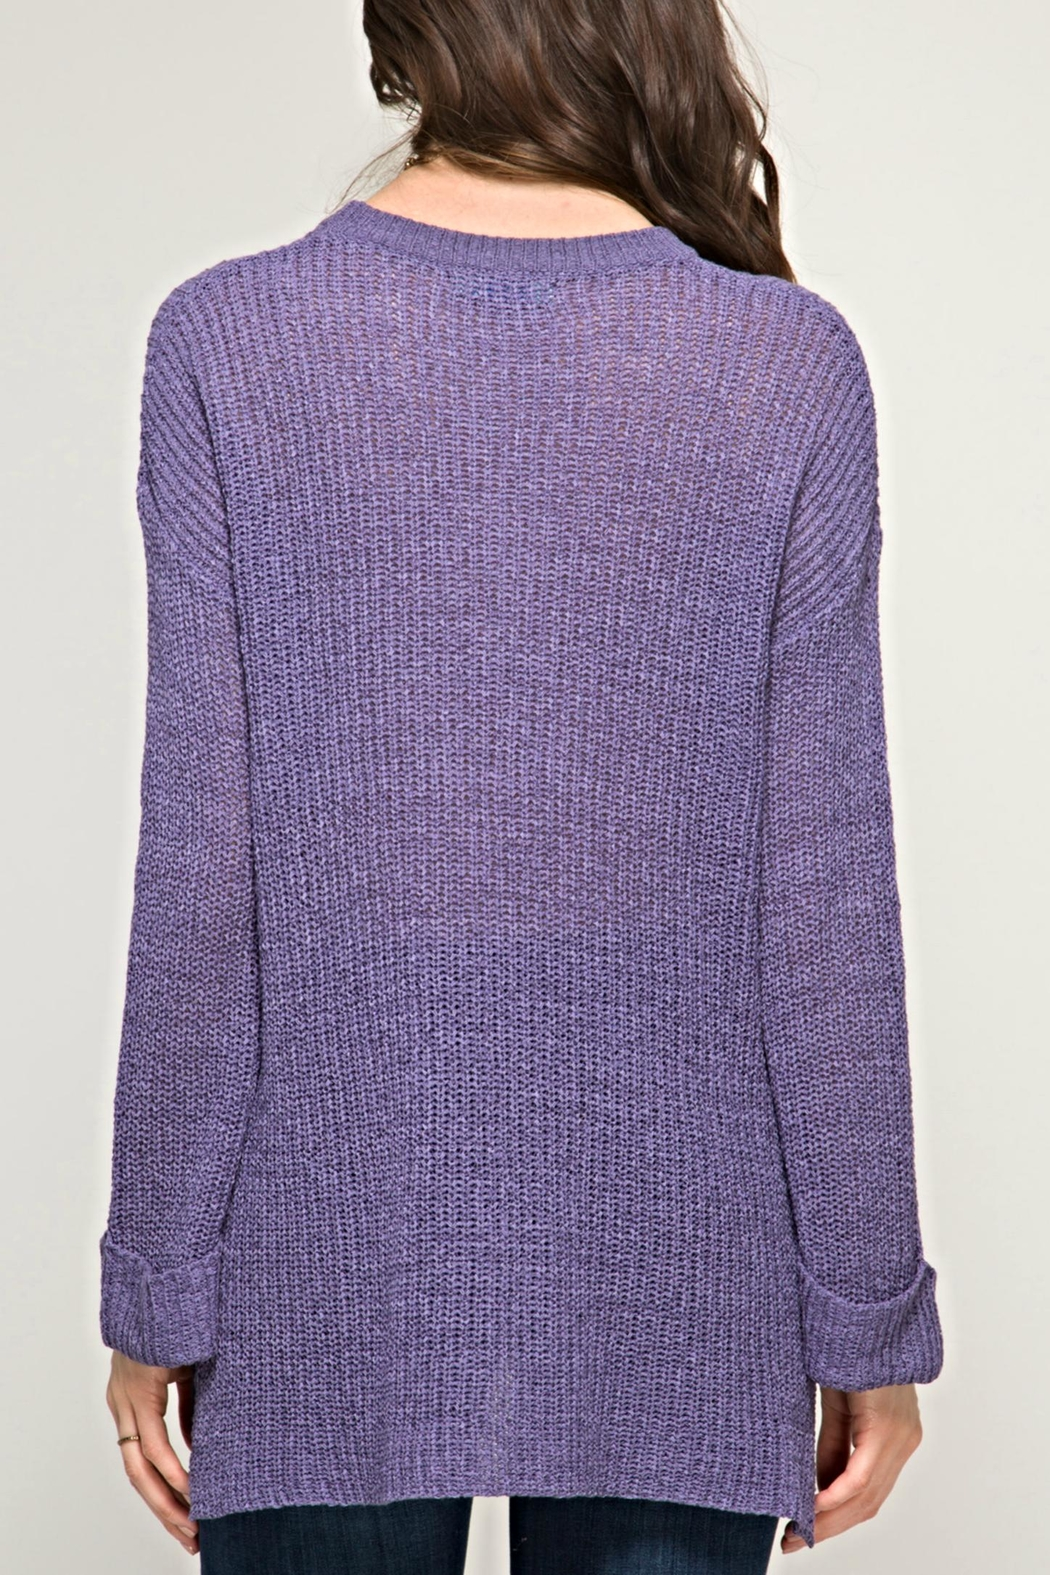 She + Sky Passionate Purple Sweater - Front Full Image